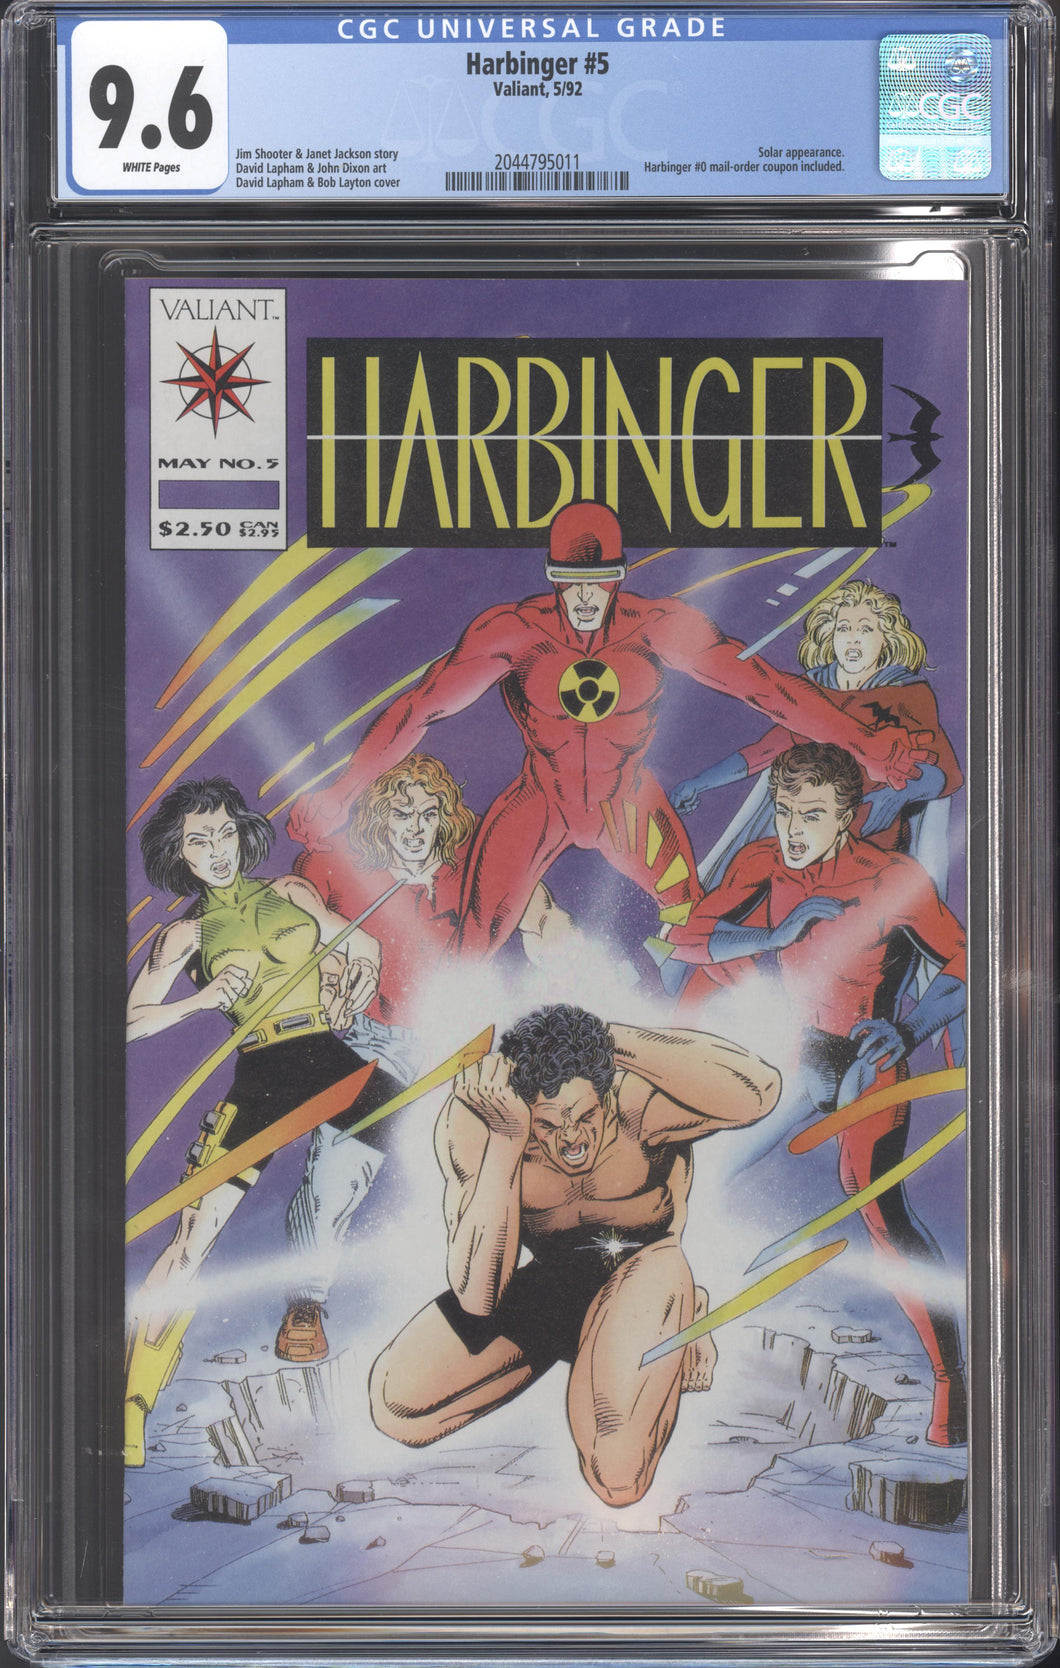 HARBINGER #5 (1992 Valiant) CGC 9.6 NM+ Solar Atom Jim Shooter